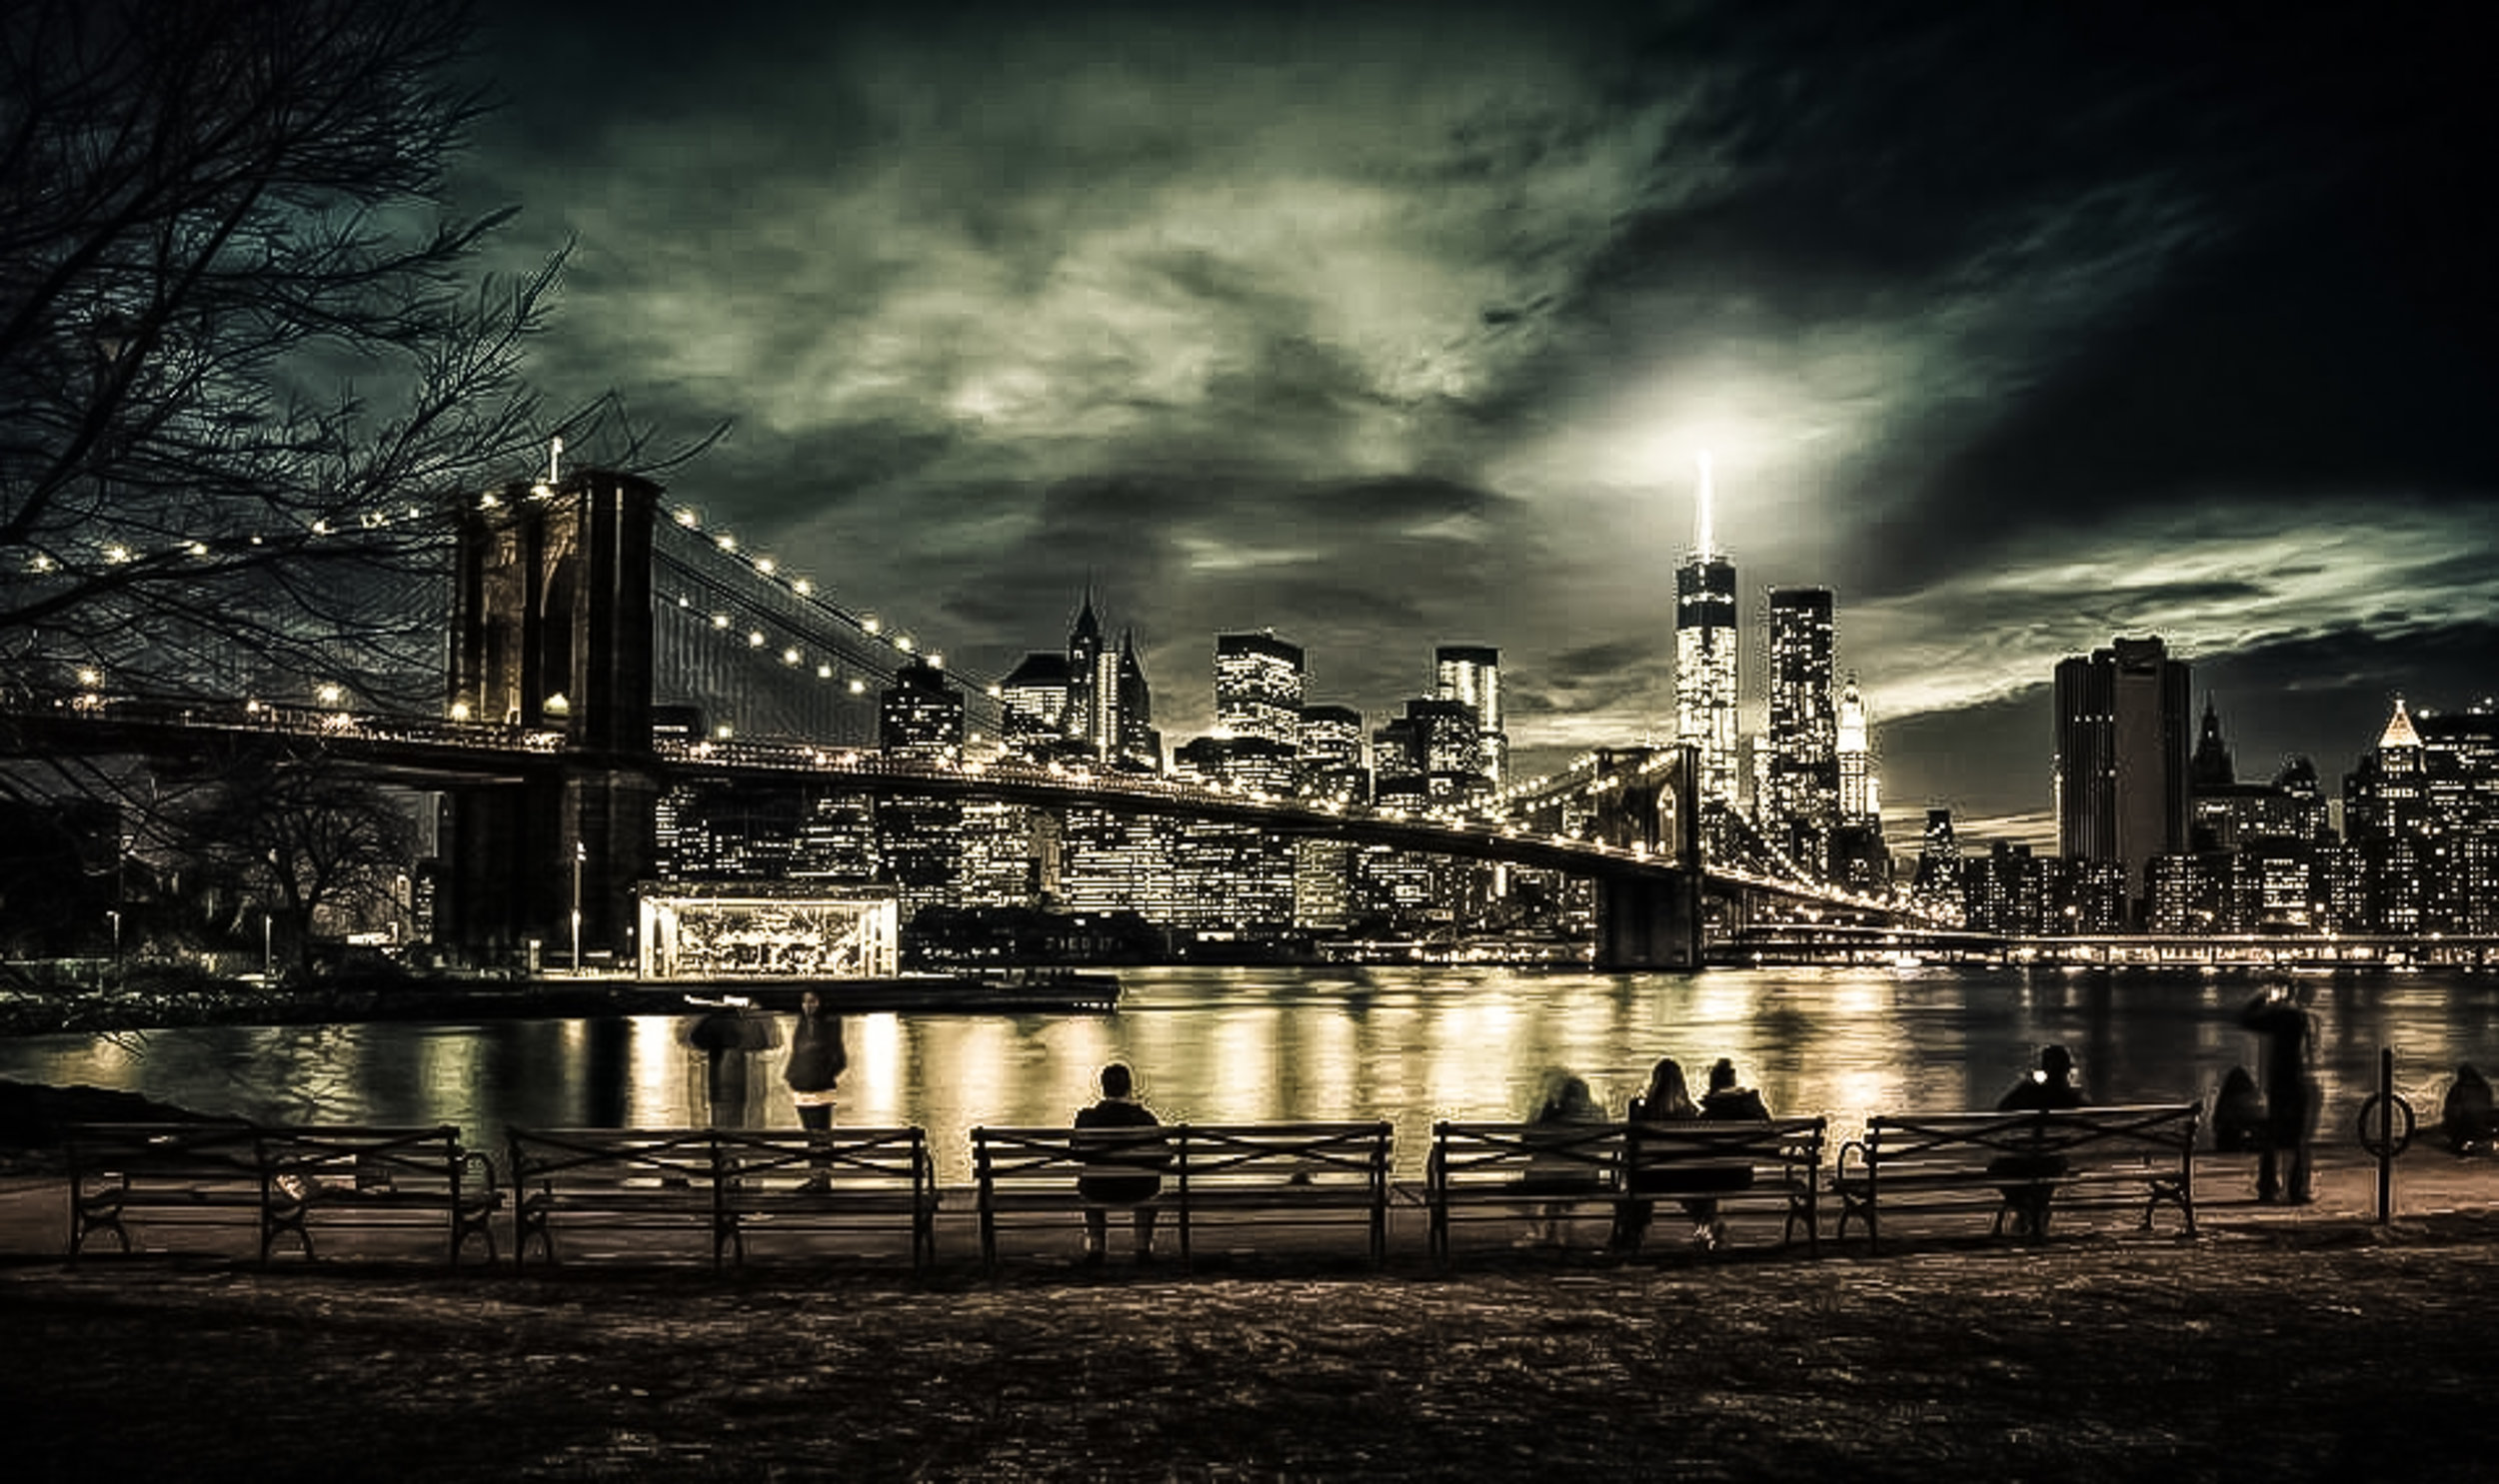 THE BROOKLYN BRIDE SEEN FROM DUMBO. JANE'S CAROUSEL (LEFT) AND FREEDOM TOWER (RIGHT). PHOTO:    @LUCASCOMPAN